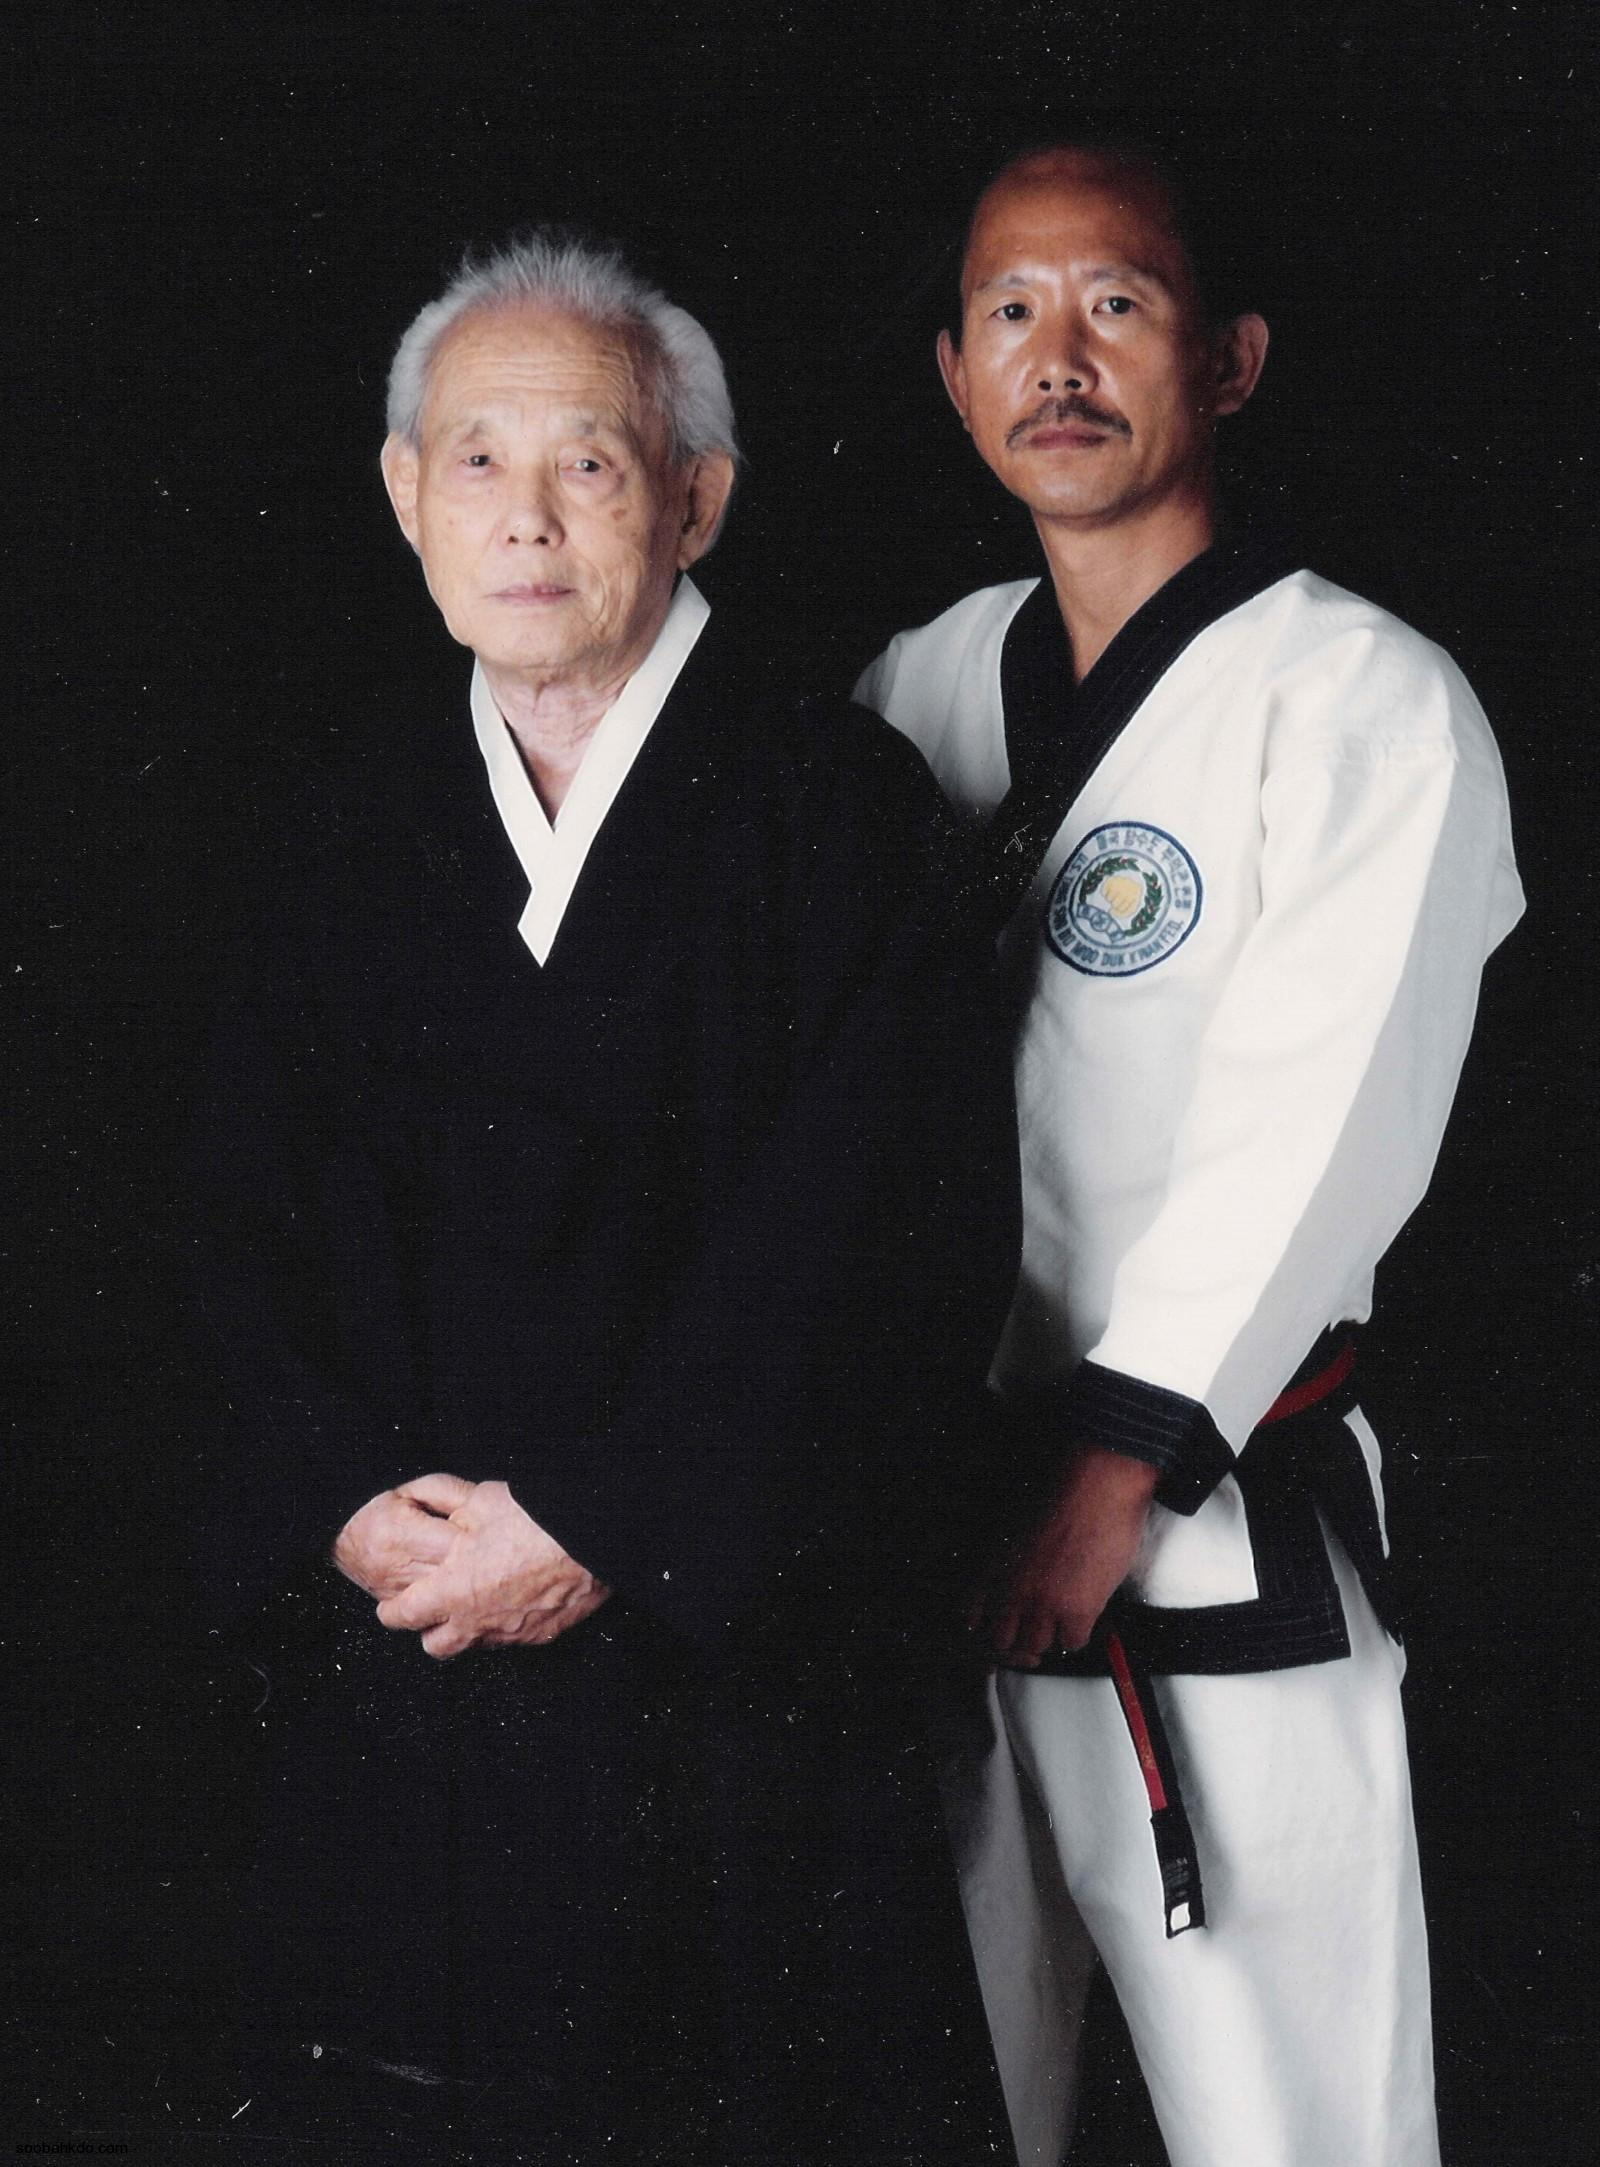 Moo Duk Kwan® Identity Defense FAQ<br /><span style='font-family: arial, helvetica, sans-serif; font-size: 12pt; color: teal;'>Frequently Asked Questions About The Kovaleski Lawsuit</span>